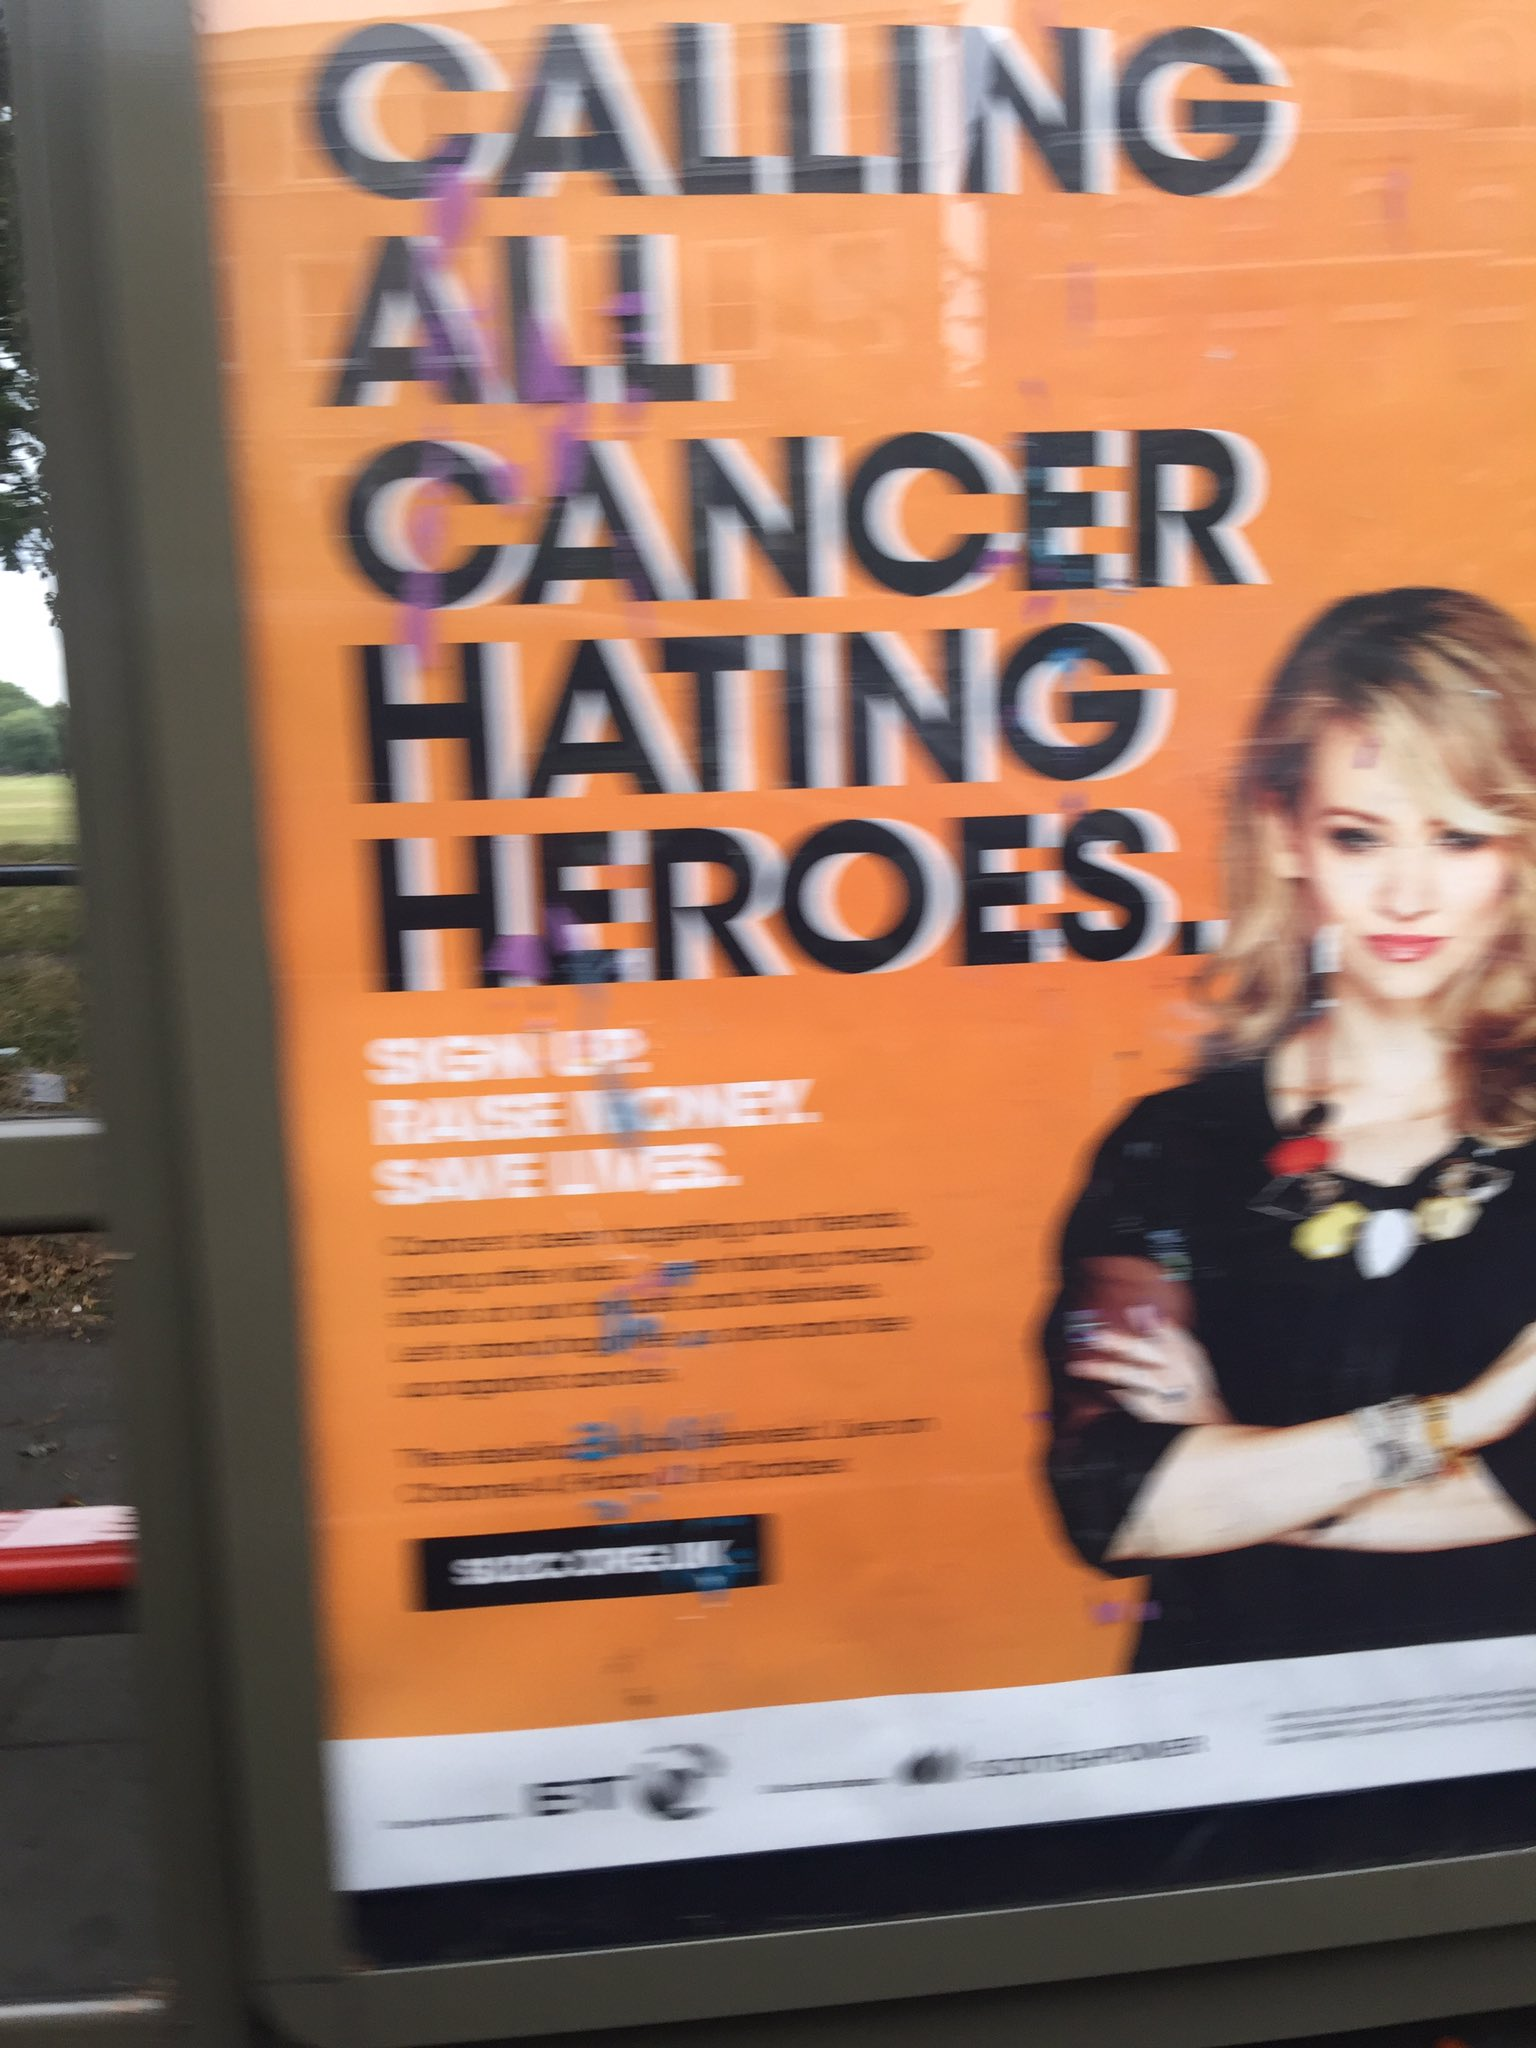 Have you seen this girl at a bus stop?......its ME!! Calling to action all Cancer hating heroes! #ihatecancer @SU2C https://t.co/oMkQNaYZu0